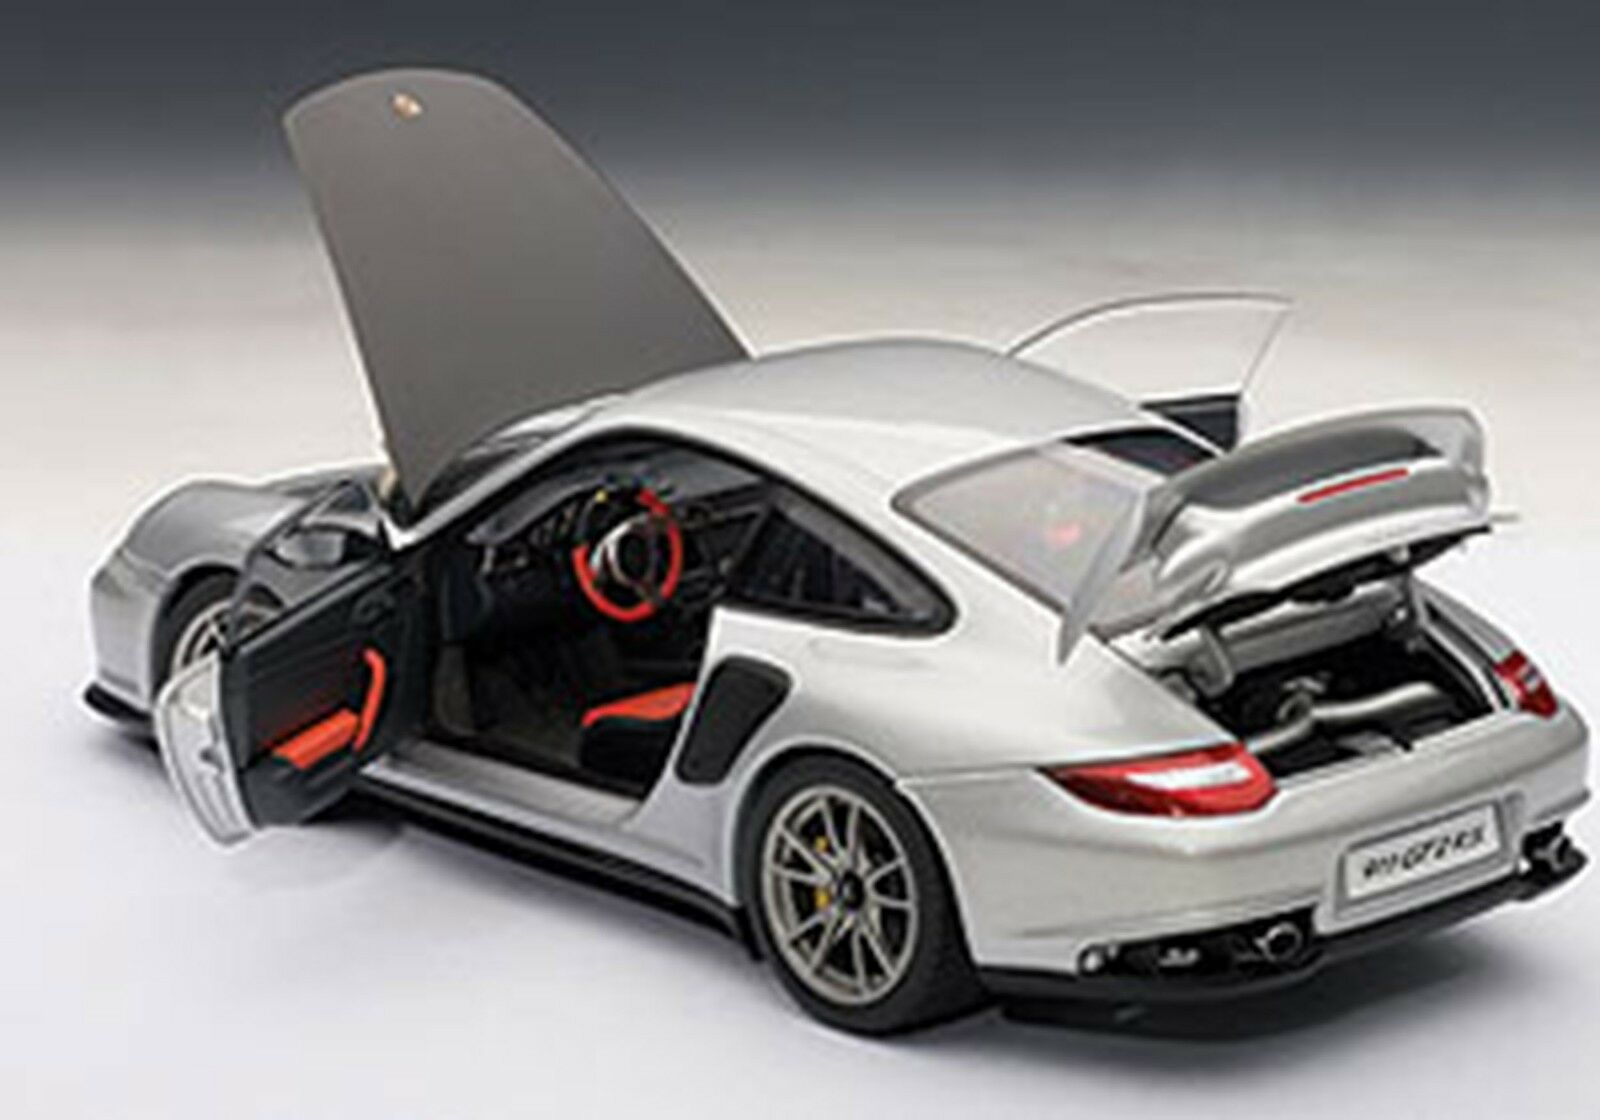 autoart porsche 911 997 gt2 rs silver 1 18 scale new release in stock cad picclick ca. Black Bedroom Furniture Sets. Home Design Ideas